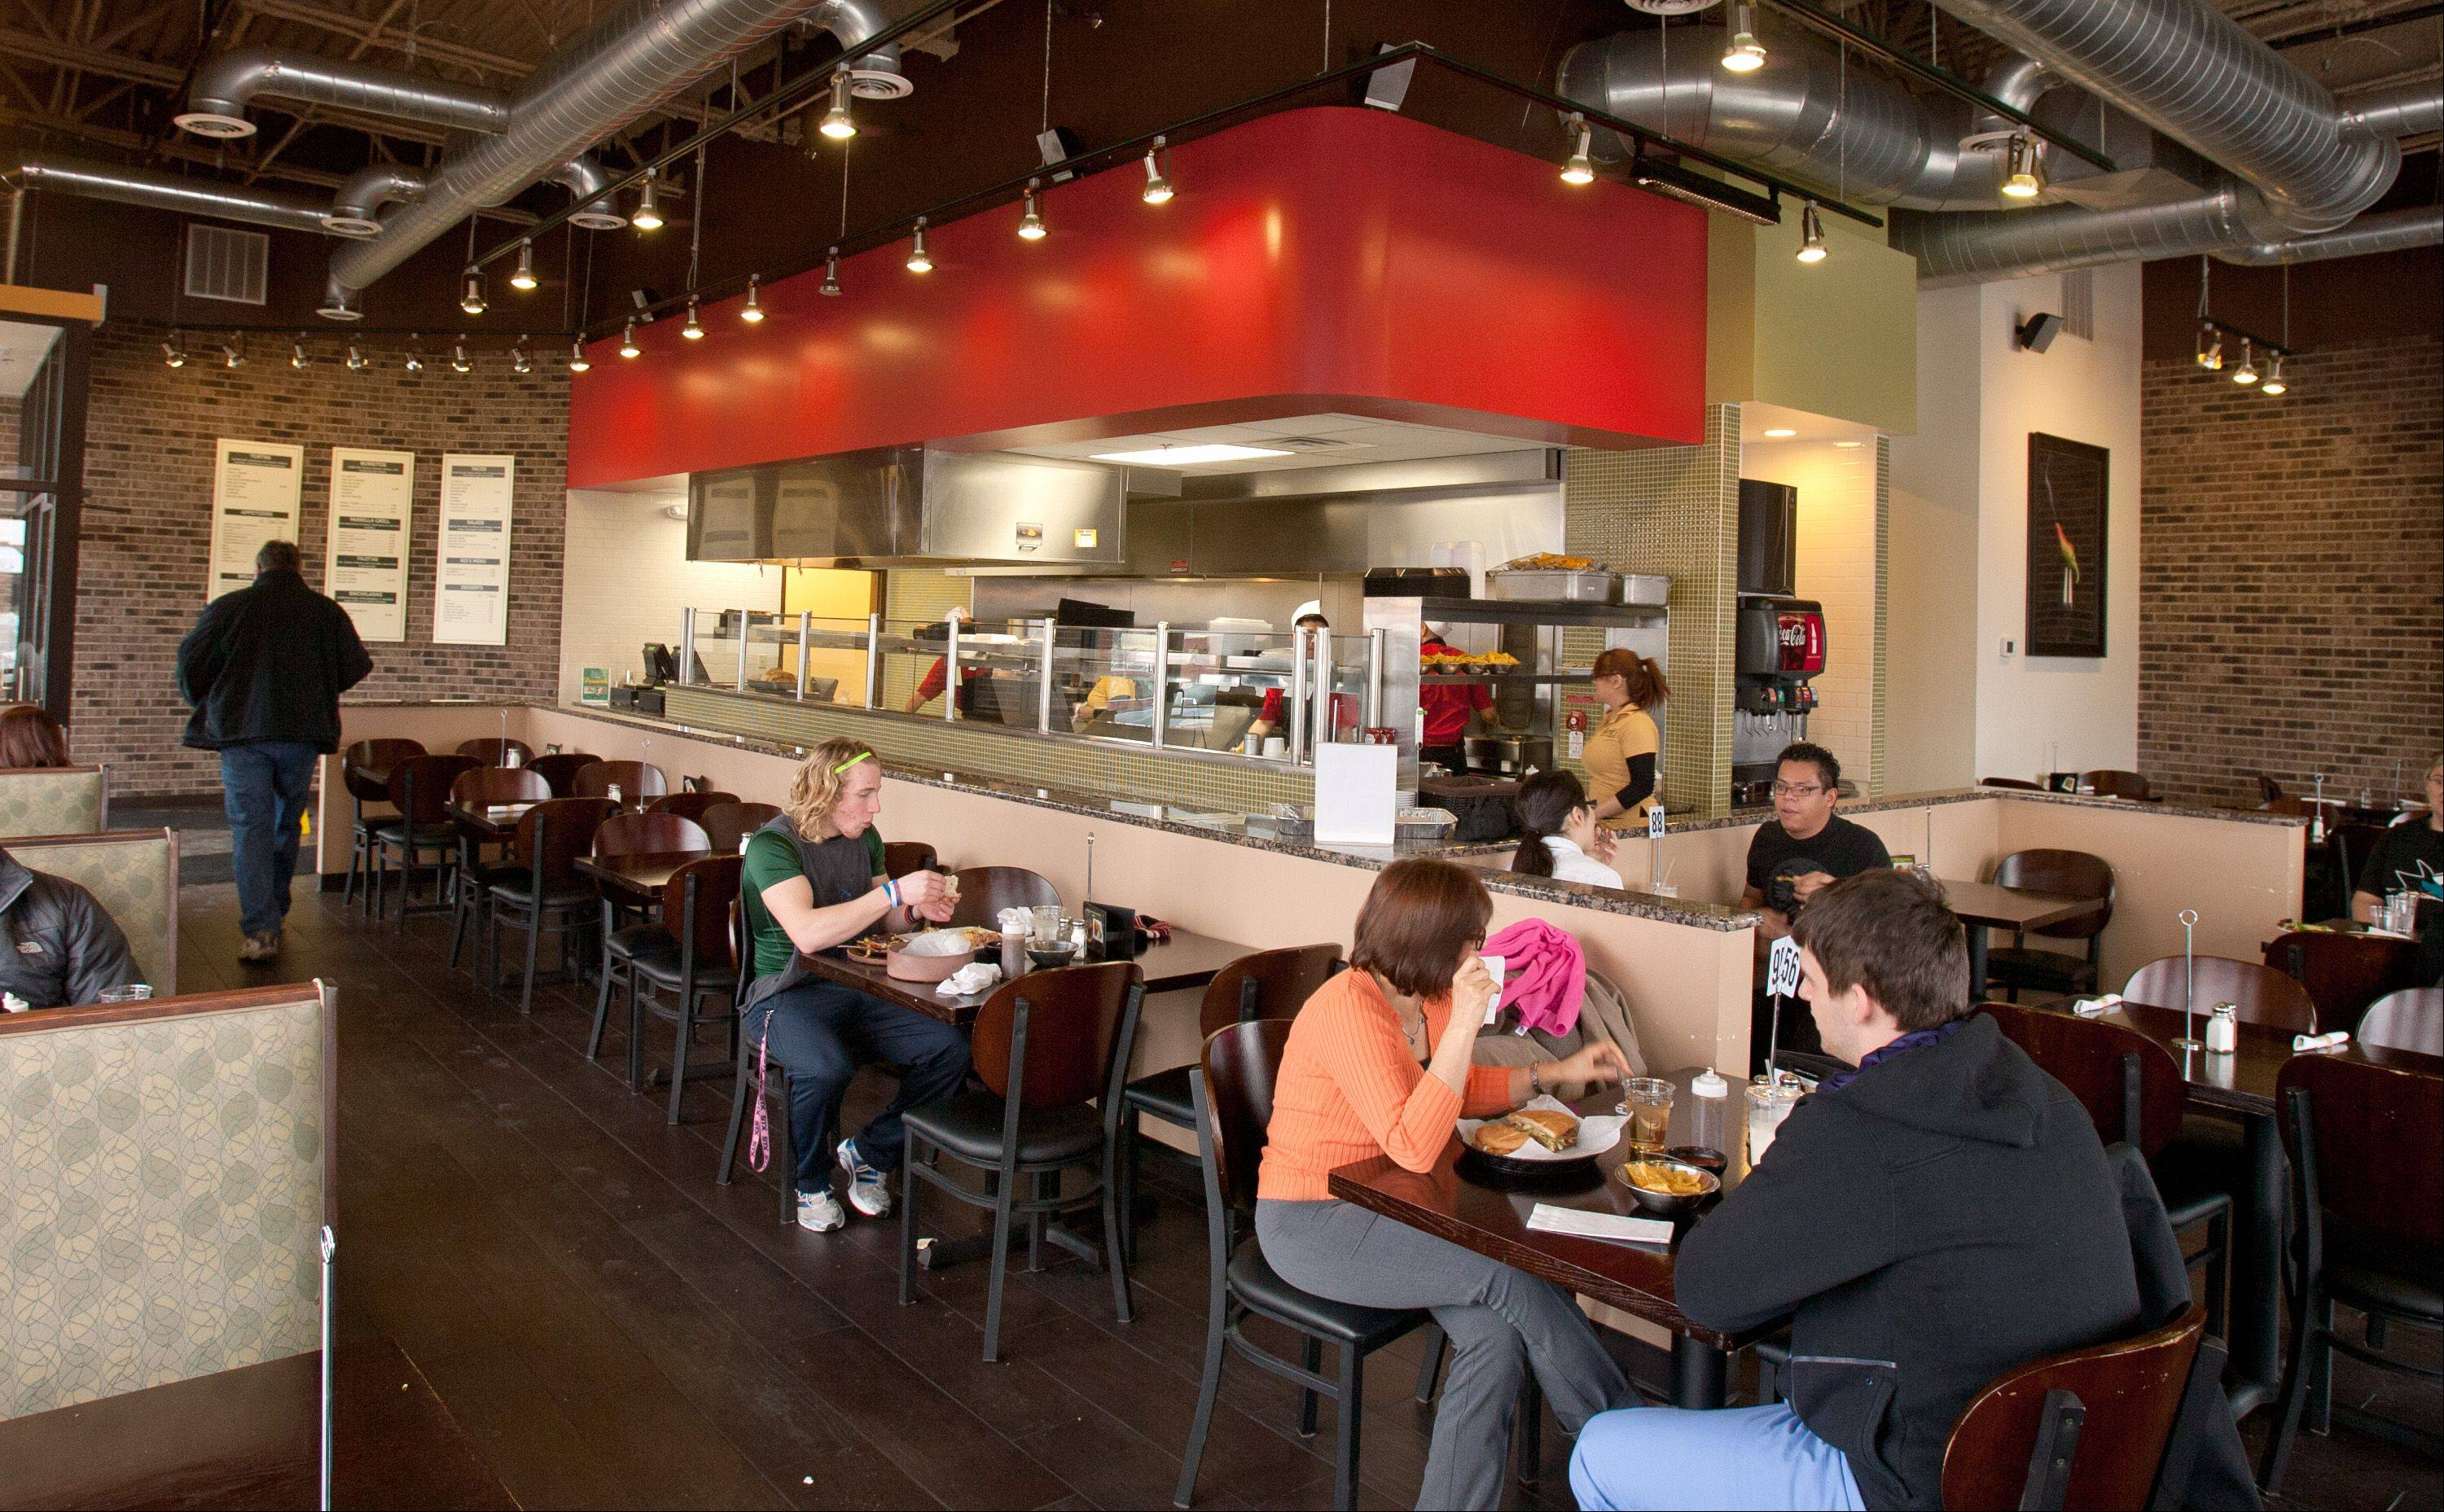 Burrito Parrilla Mexicana offers an inviting spot for enjoying fast-casual Mexican favorites and specialties.